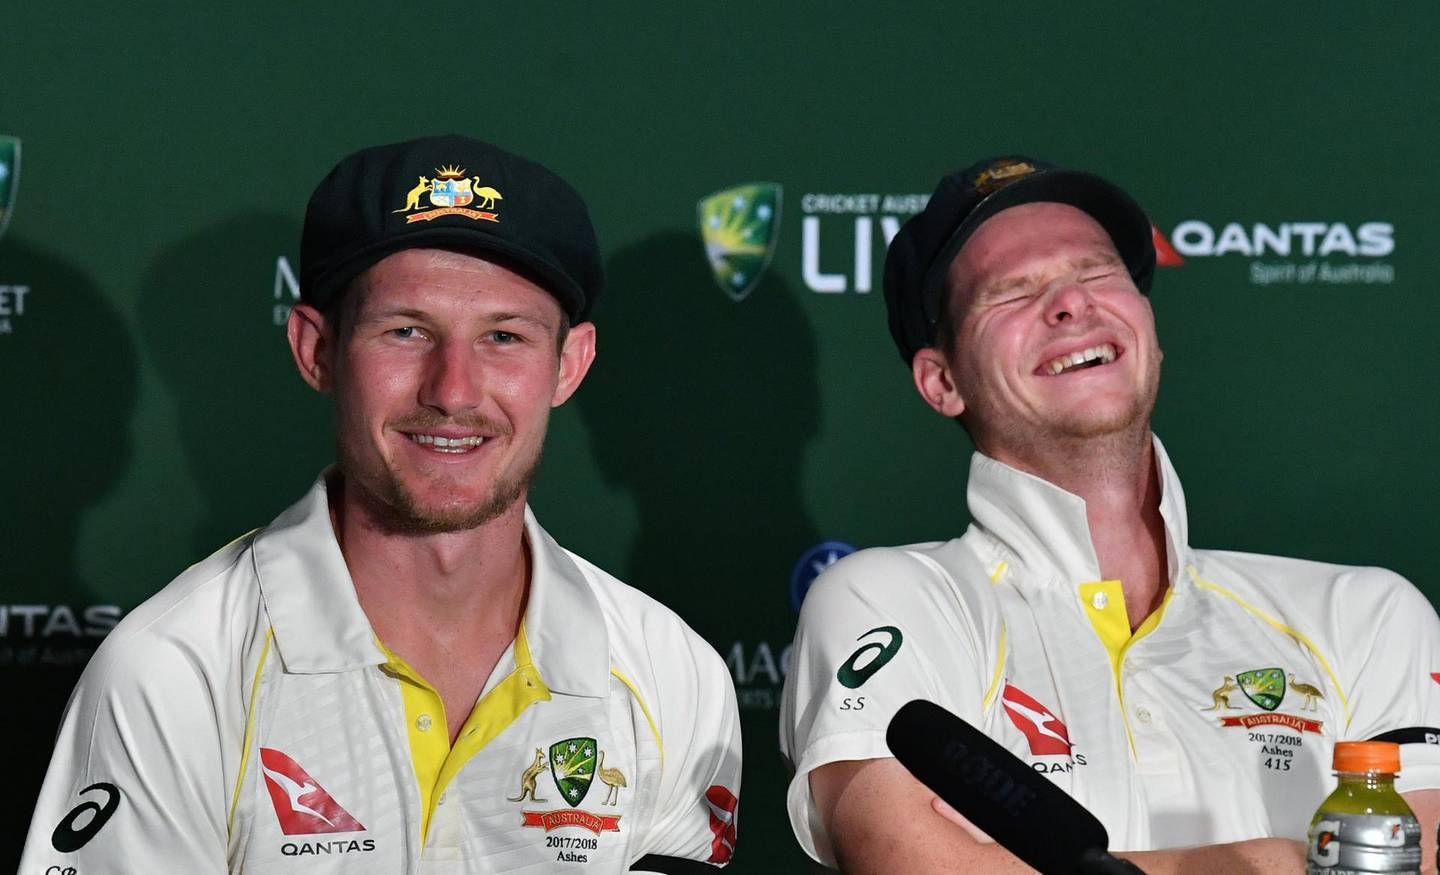 epa06353131 Cameron Bancroft (L) and Steve Smith (R) of Australia answer questions from the media about England wicketkeeper Jonny Bairstow at a post match press conference on Day 5 of the First Ashes Test match between Australia and England at the Gabba in Brisbane, Queensland, Australia, 27 November 2017.  EPA/DARREN ENGLAND EDITORIAL USE ONLY, IMAGES TO BE USED FOR NEWS REPORTING PURPOSES ONLY, NO COMMERCIAL USE WHATSOEVER, NO USE IN BOOKS WITHOUT PRIOR WRITTEN CONSENT FROM AAP AUSTRALIA AND NEW ZEALAND OUT